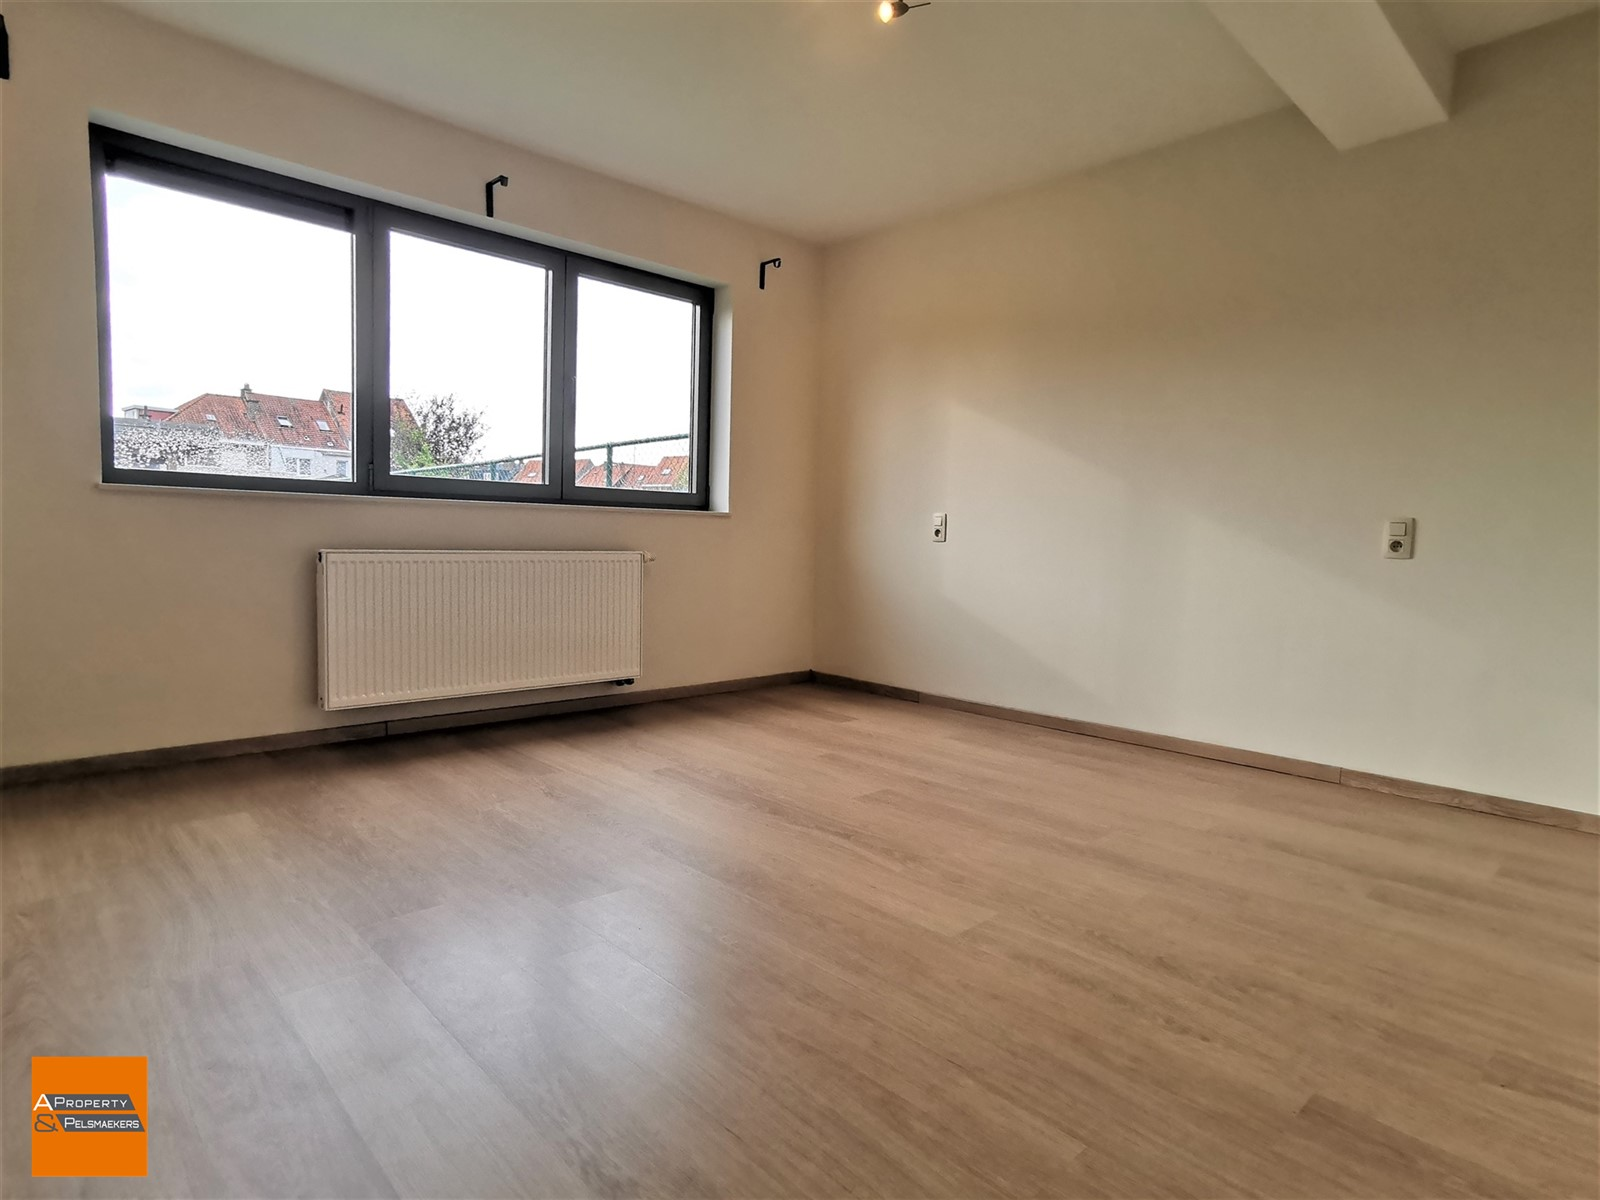 Image 14 : Apartment building IN 3070 KORTENBERG (Belgium) - Price 1.050.000 €